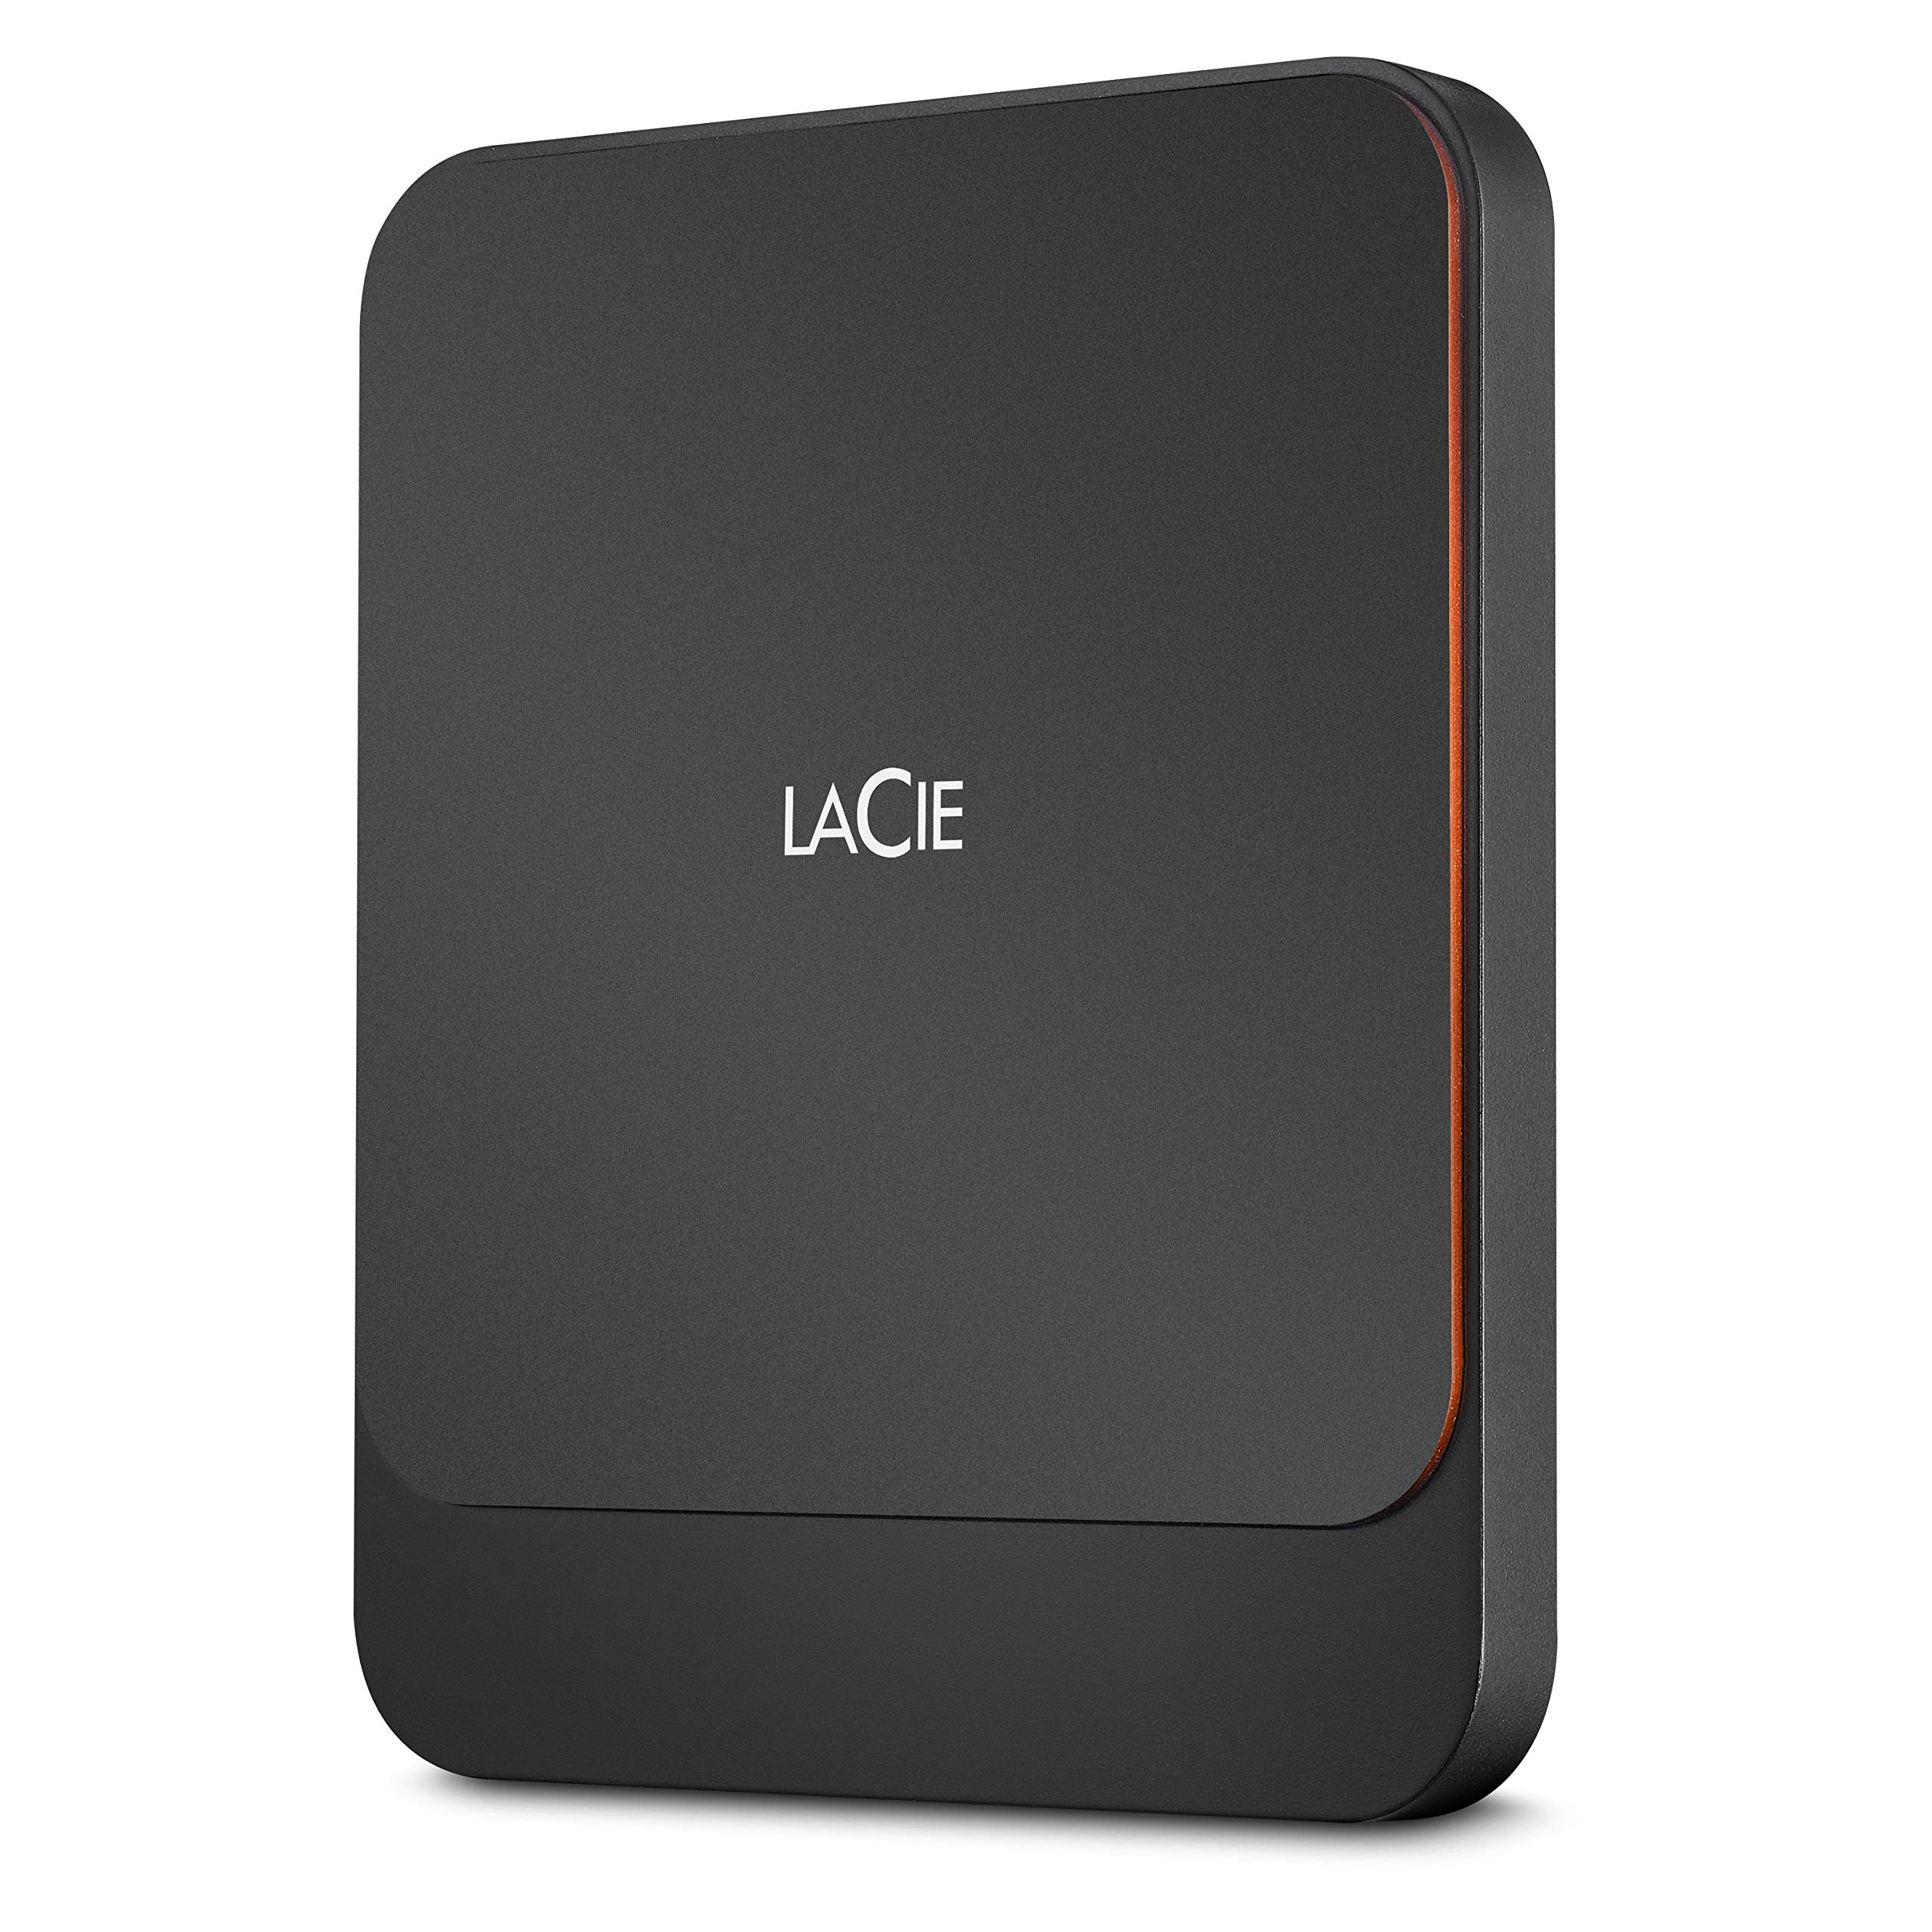 LaCie Portable SSD High Performance External SSD USB-C USB 3.0 1TB STHK1000800